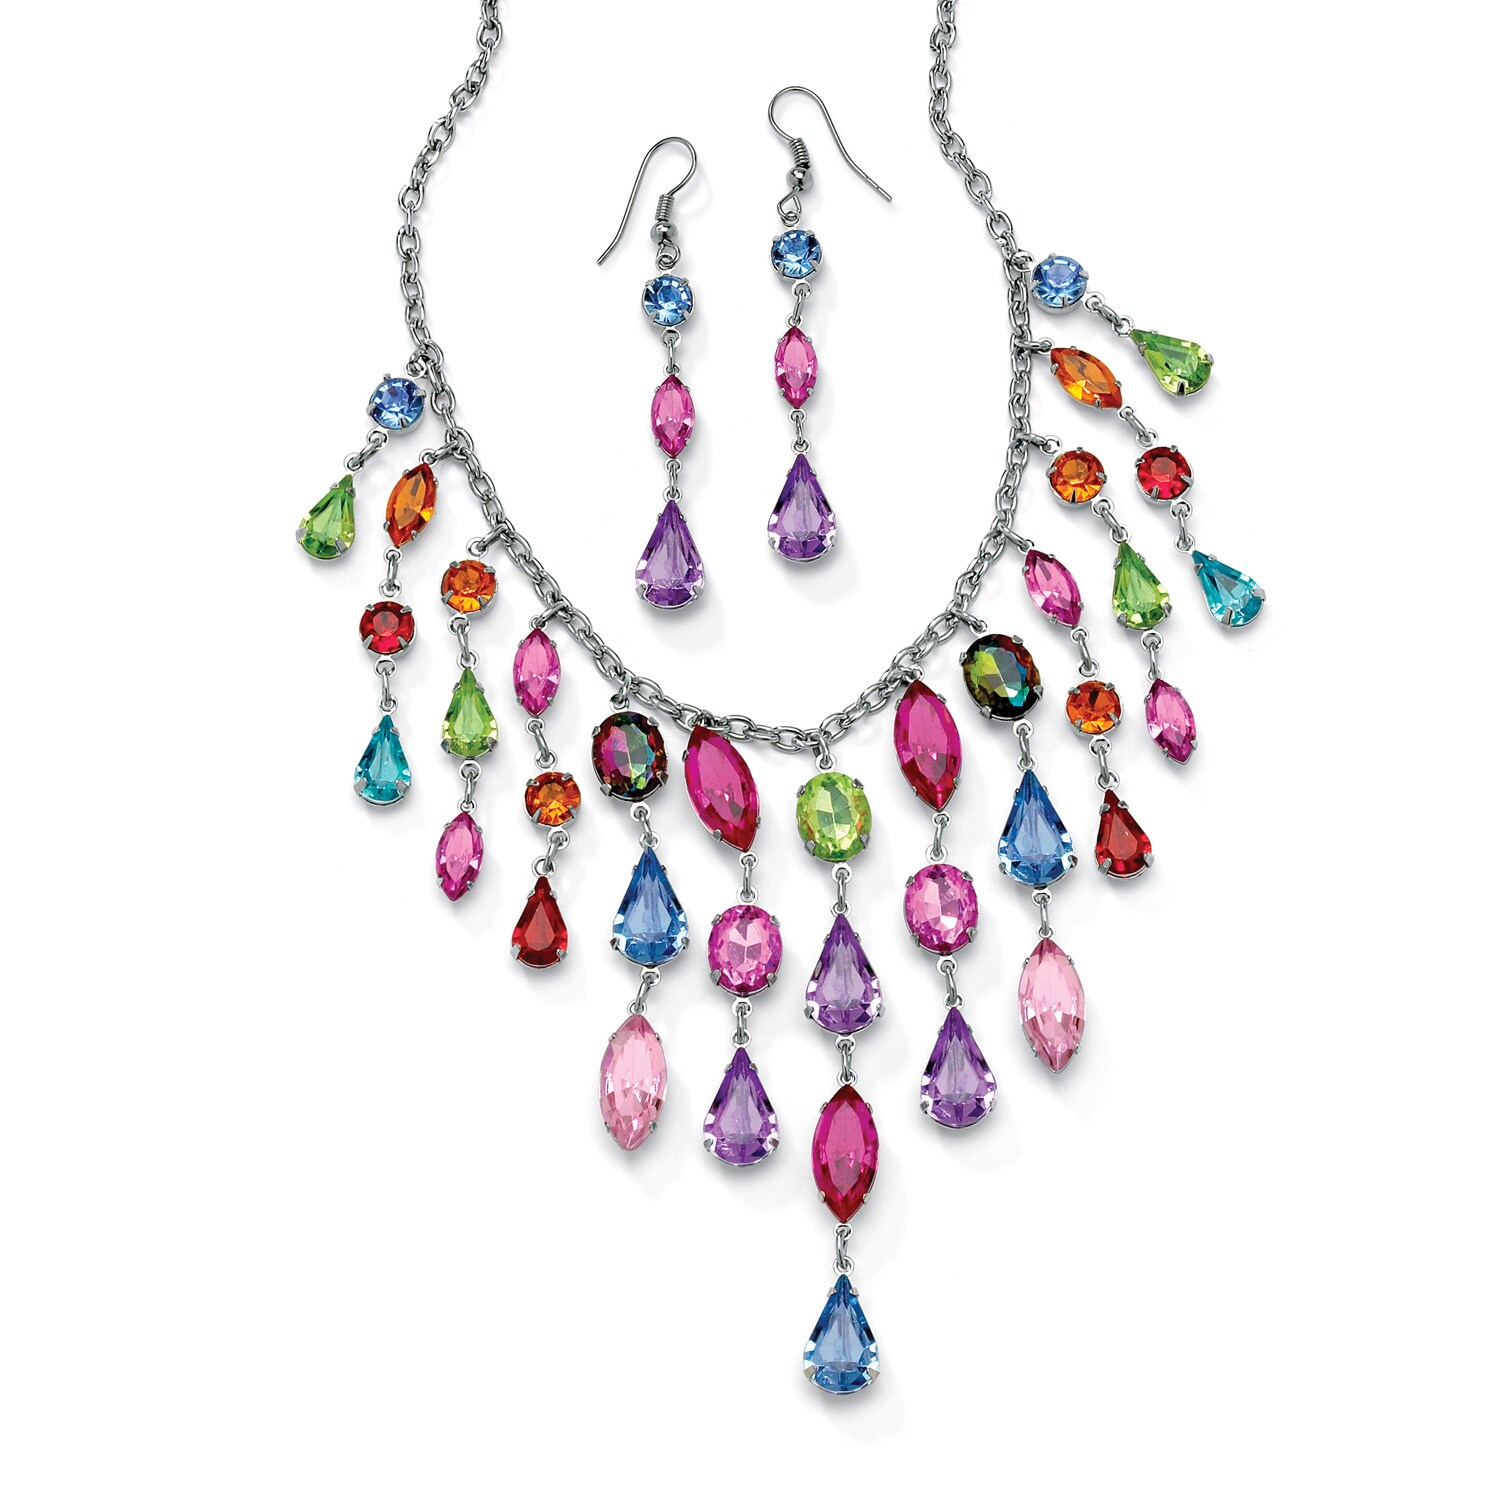 Palm Beach Multicolor Crystal Bib Necklace and Earrings T...